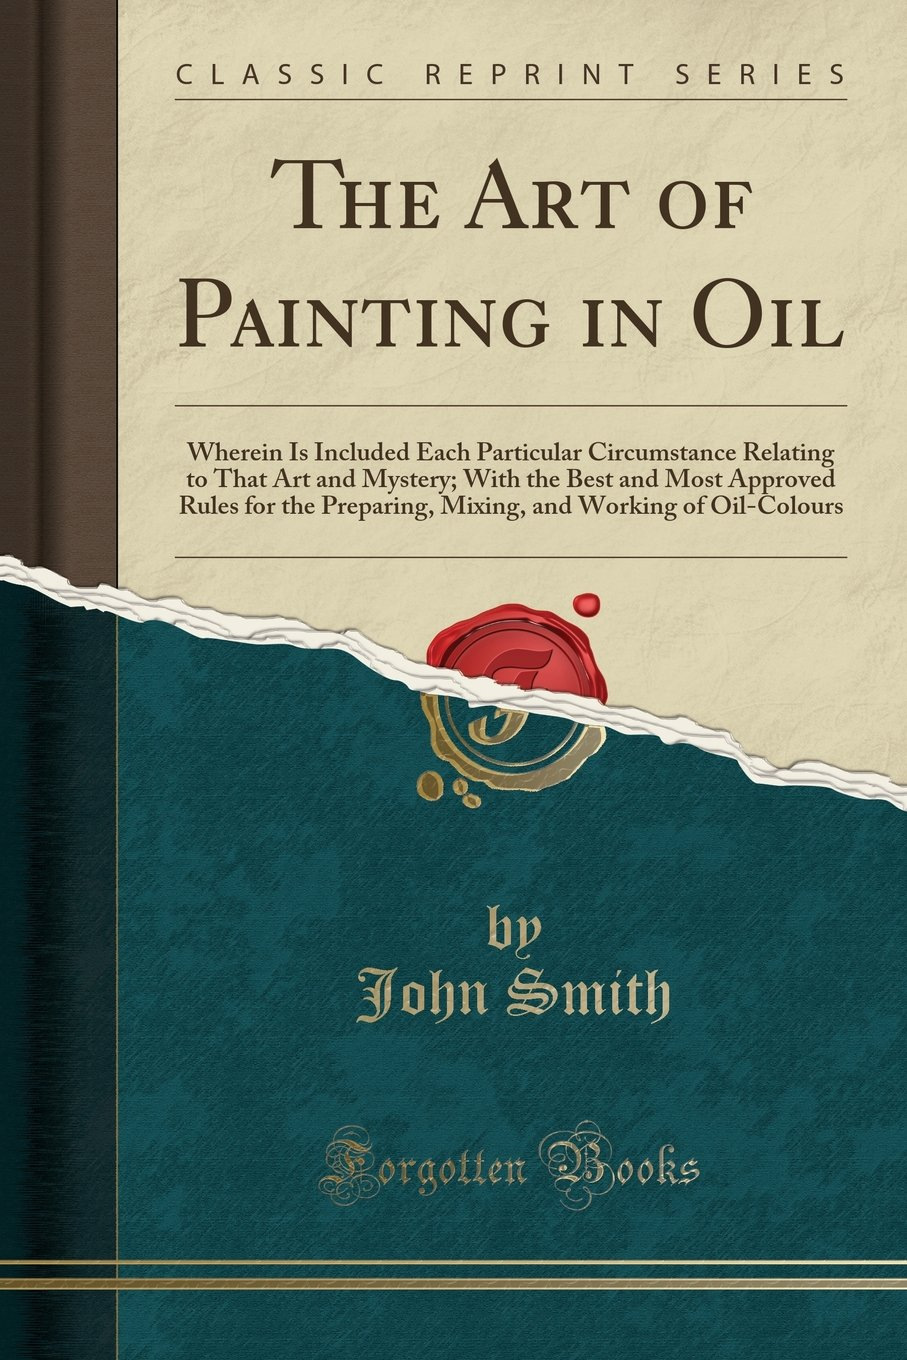 The Art of Painting in Oil: Wherein Is Included Each Particular Circumstance Relating to That Art and Mystery; With the Best and Most Approved Rules ... and Working of Oil-Colours (Classic Reprint) pdf epub